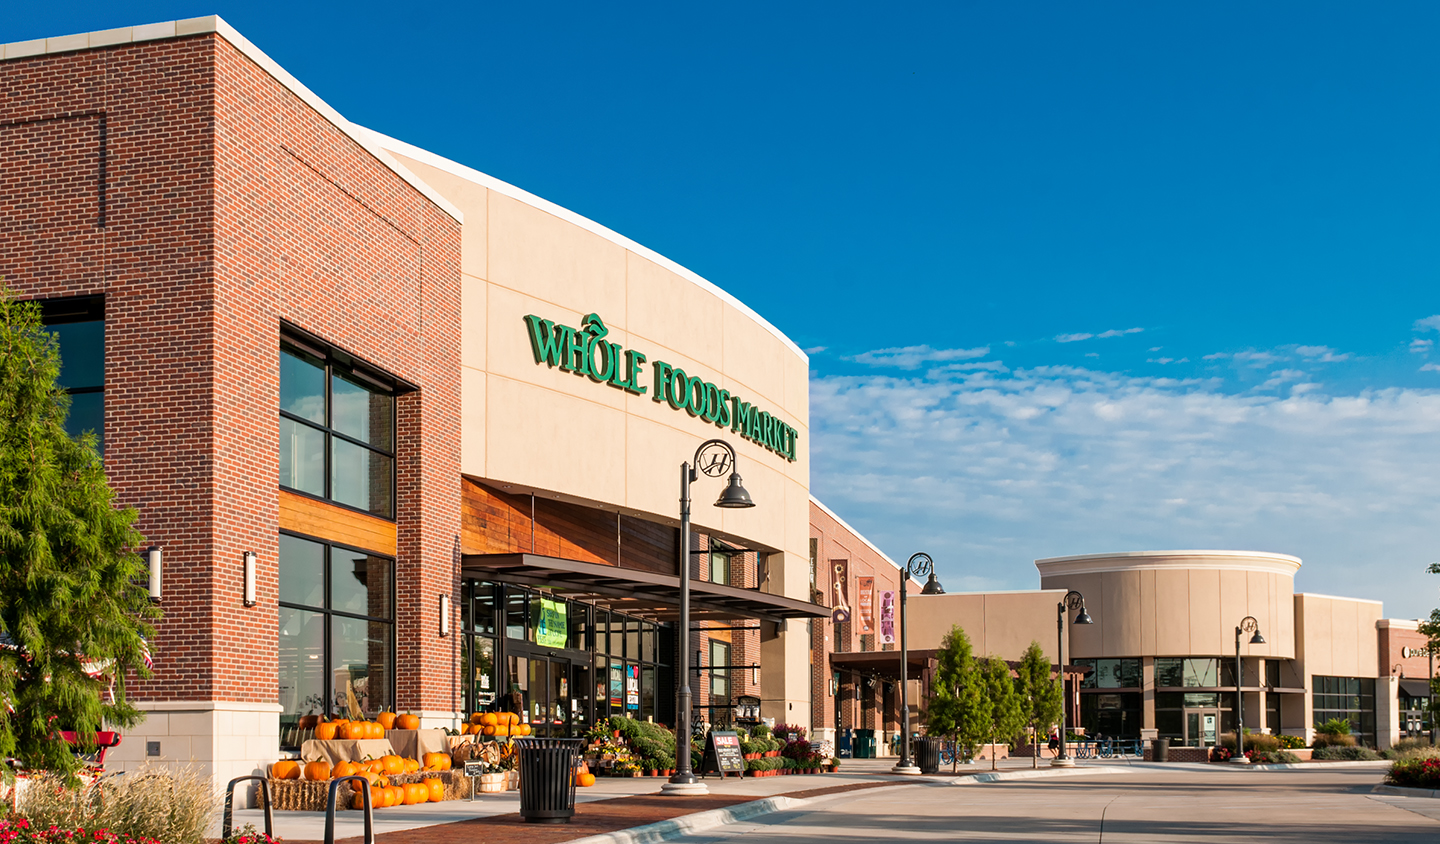 Whole Foods Market Wichita Ks